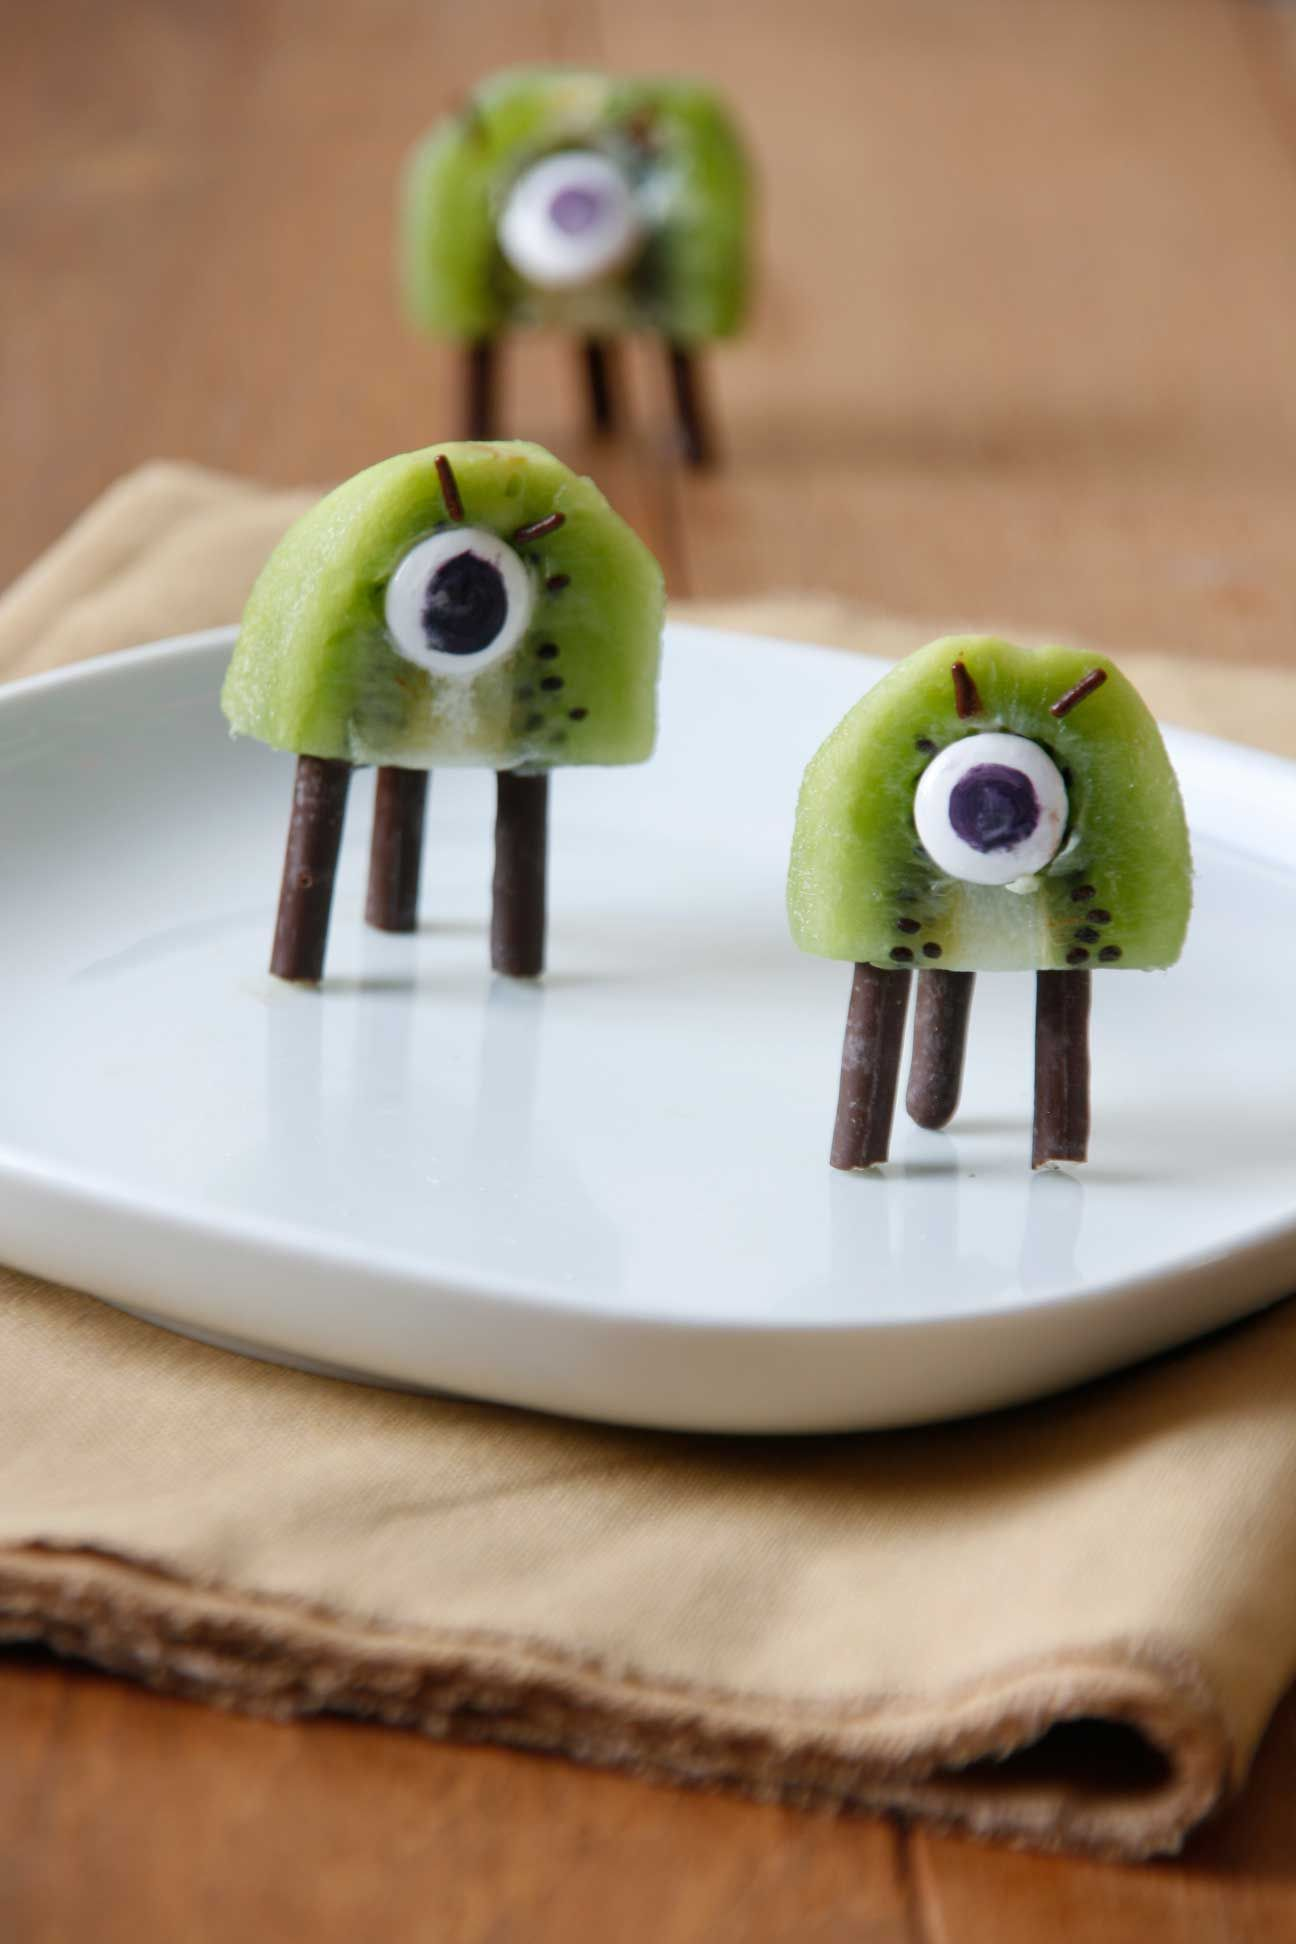 Deco Snack Kiwi And Chocolate Martians By Littlecook Adorable Monster Snack